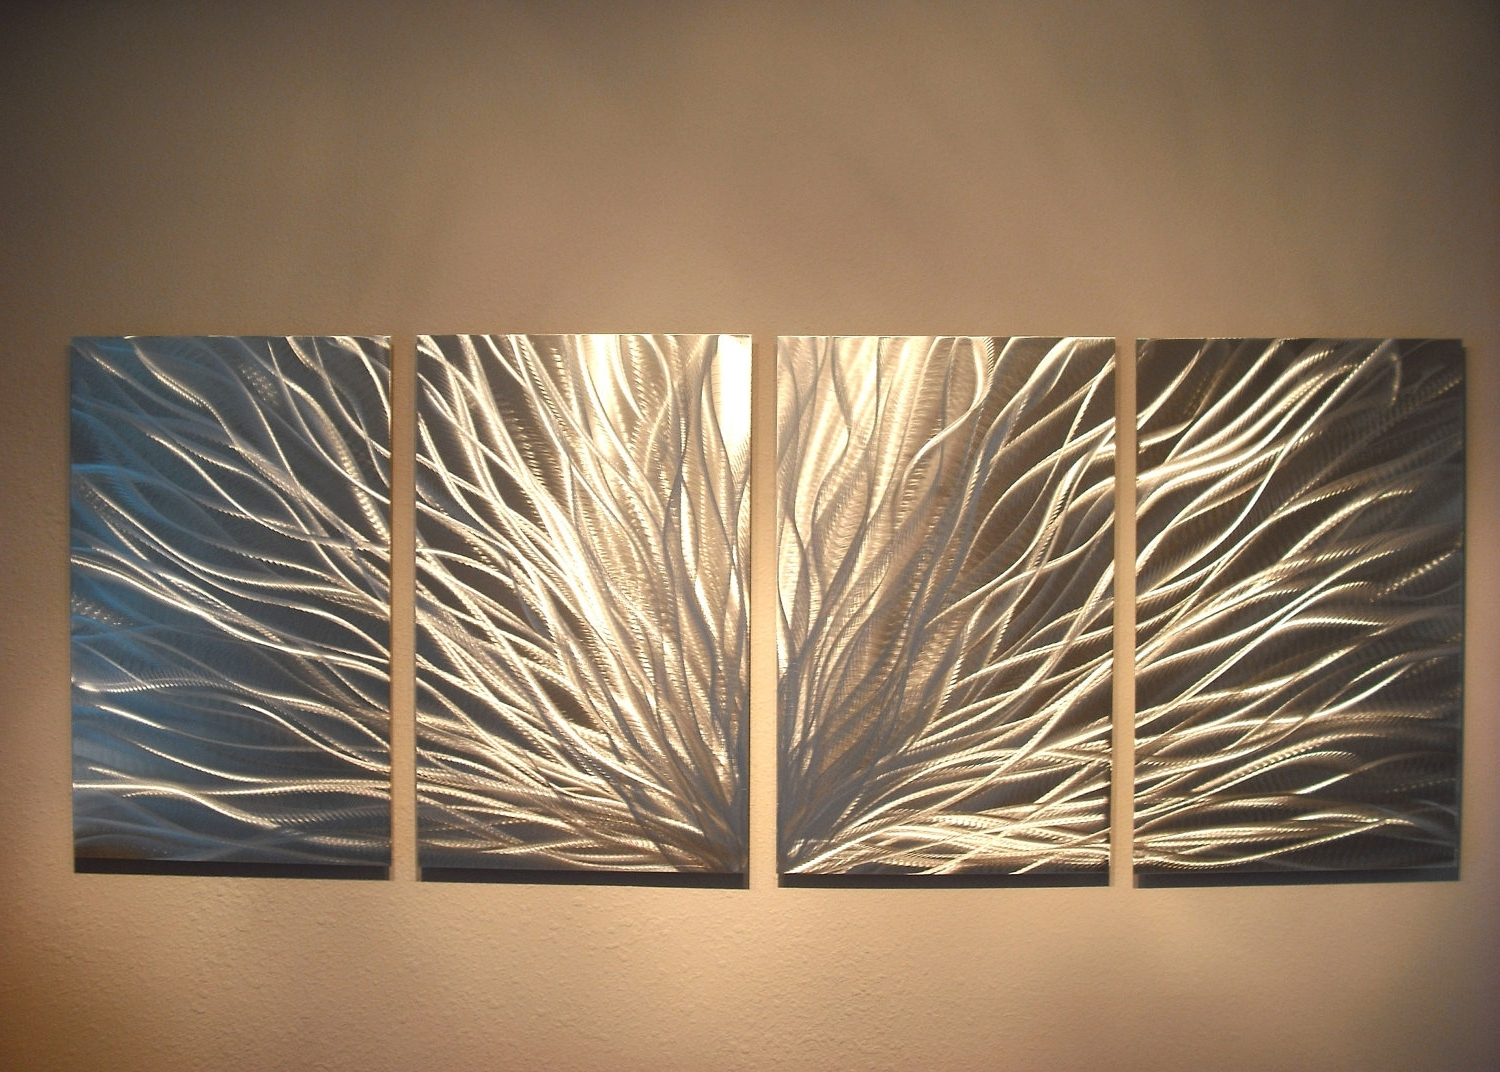 Cheap Metal Wall Art Intended For Current Radiance – Abstract Metal Wall Art Contemporary Modern Decor On Storenvy (View 2 of 15)